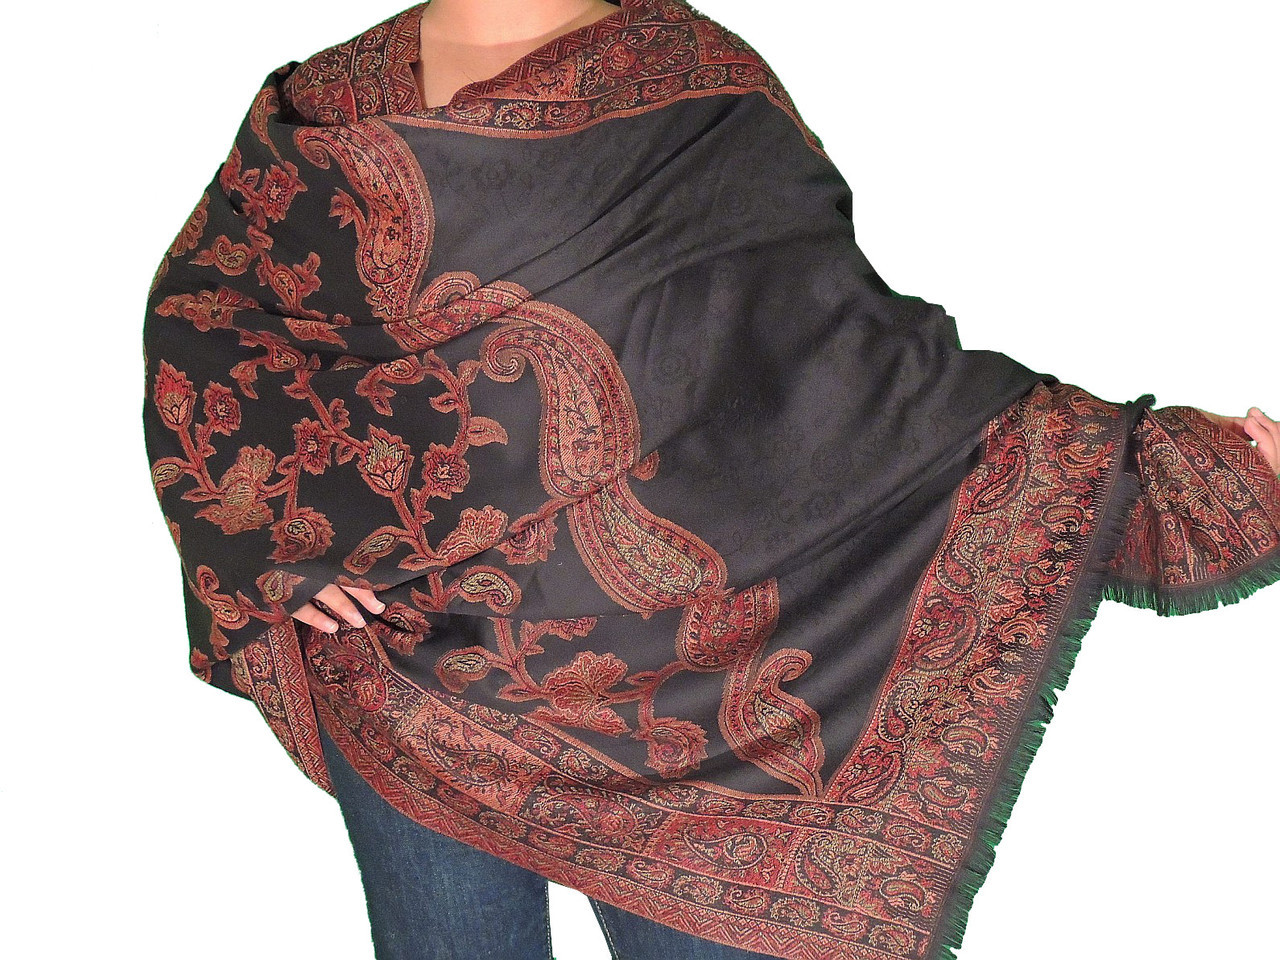 380a8de93bc61 Black Wool Evening Scarf Wrap - Cozy Floral Weave Jacquard Dressy ...